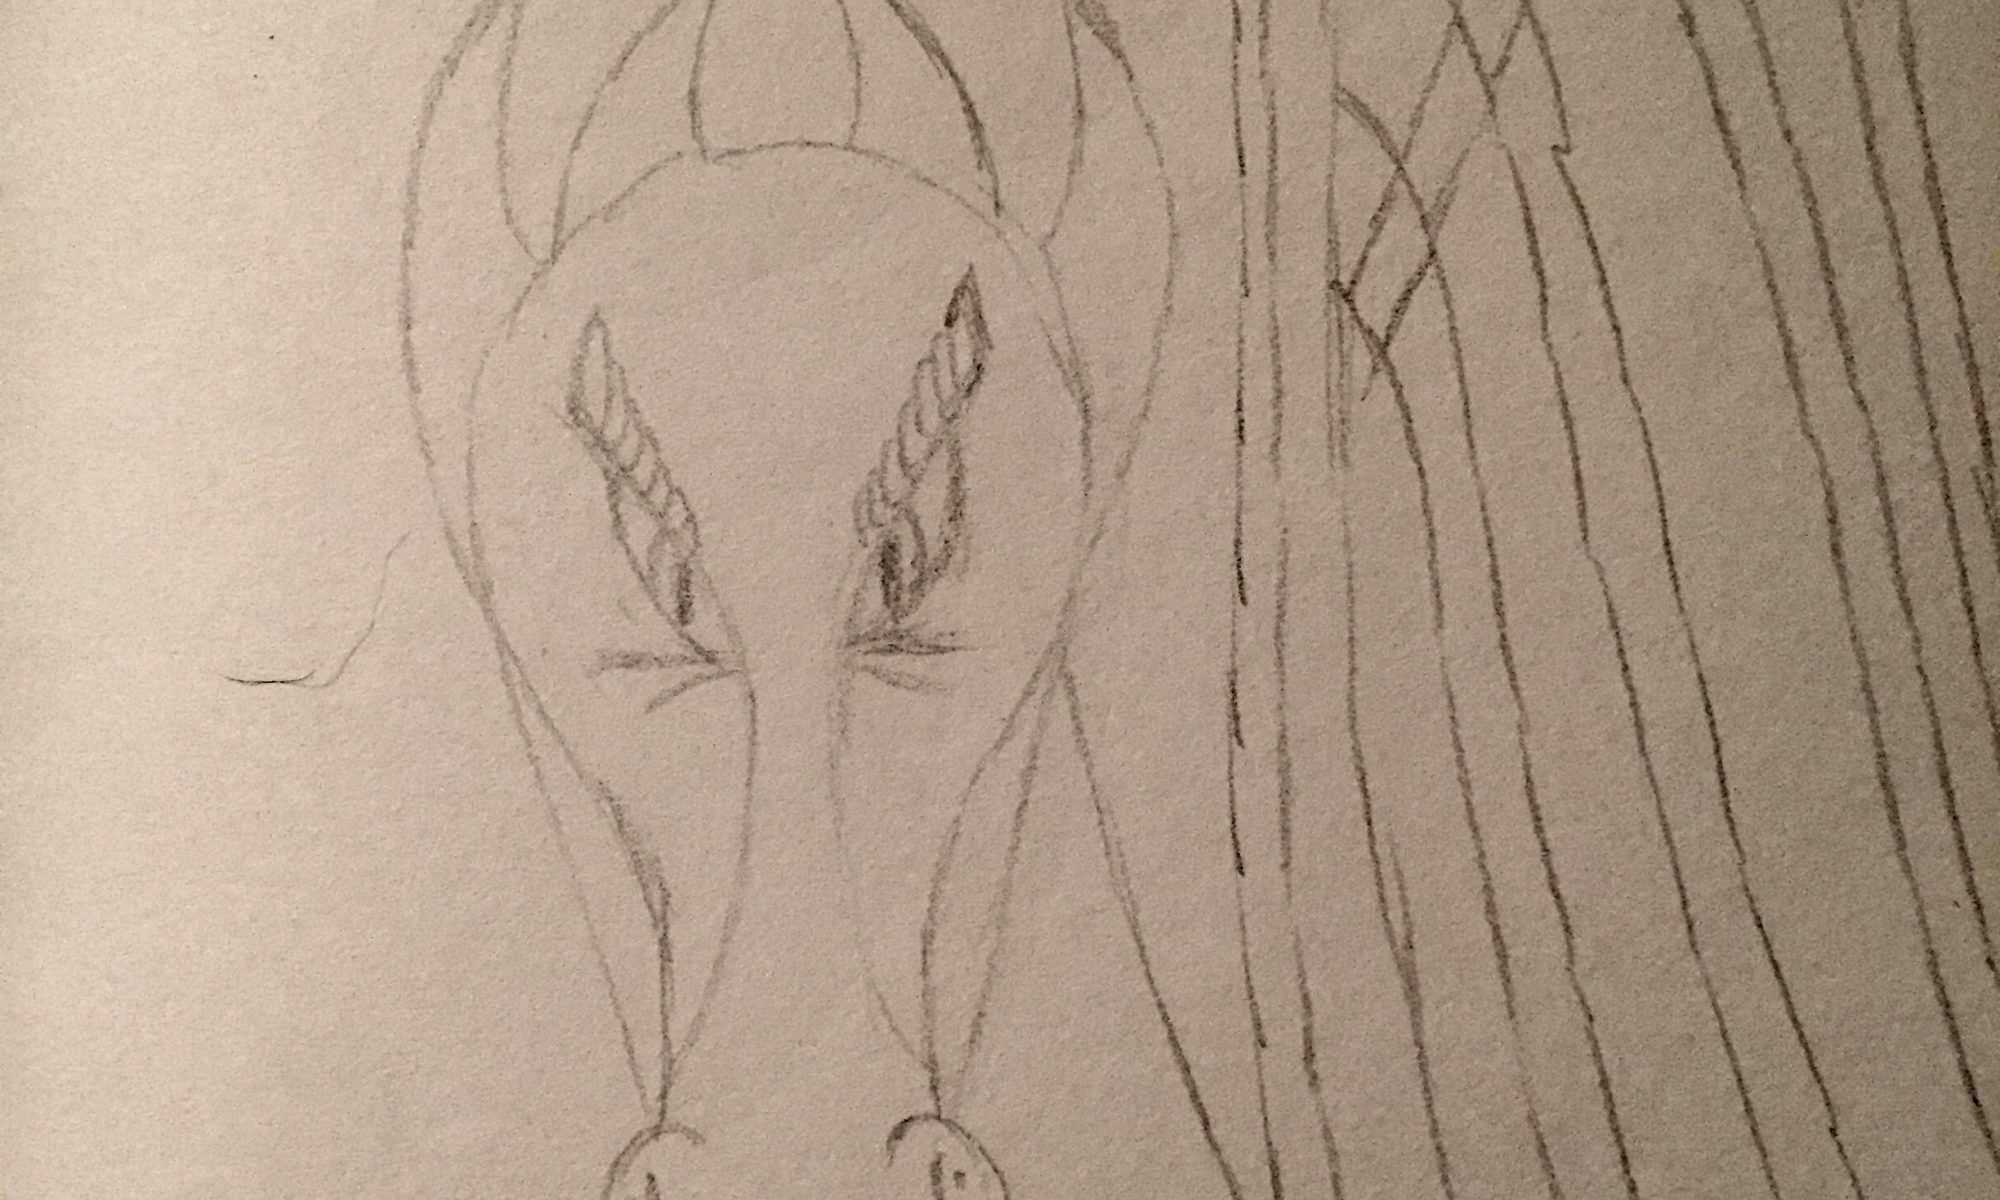 Dragon with wings like a harp in pencil